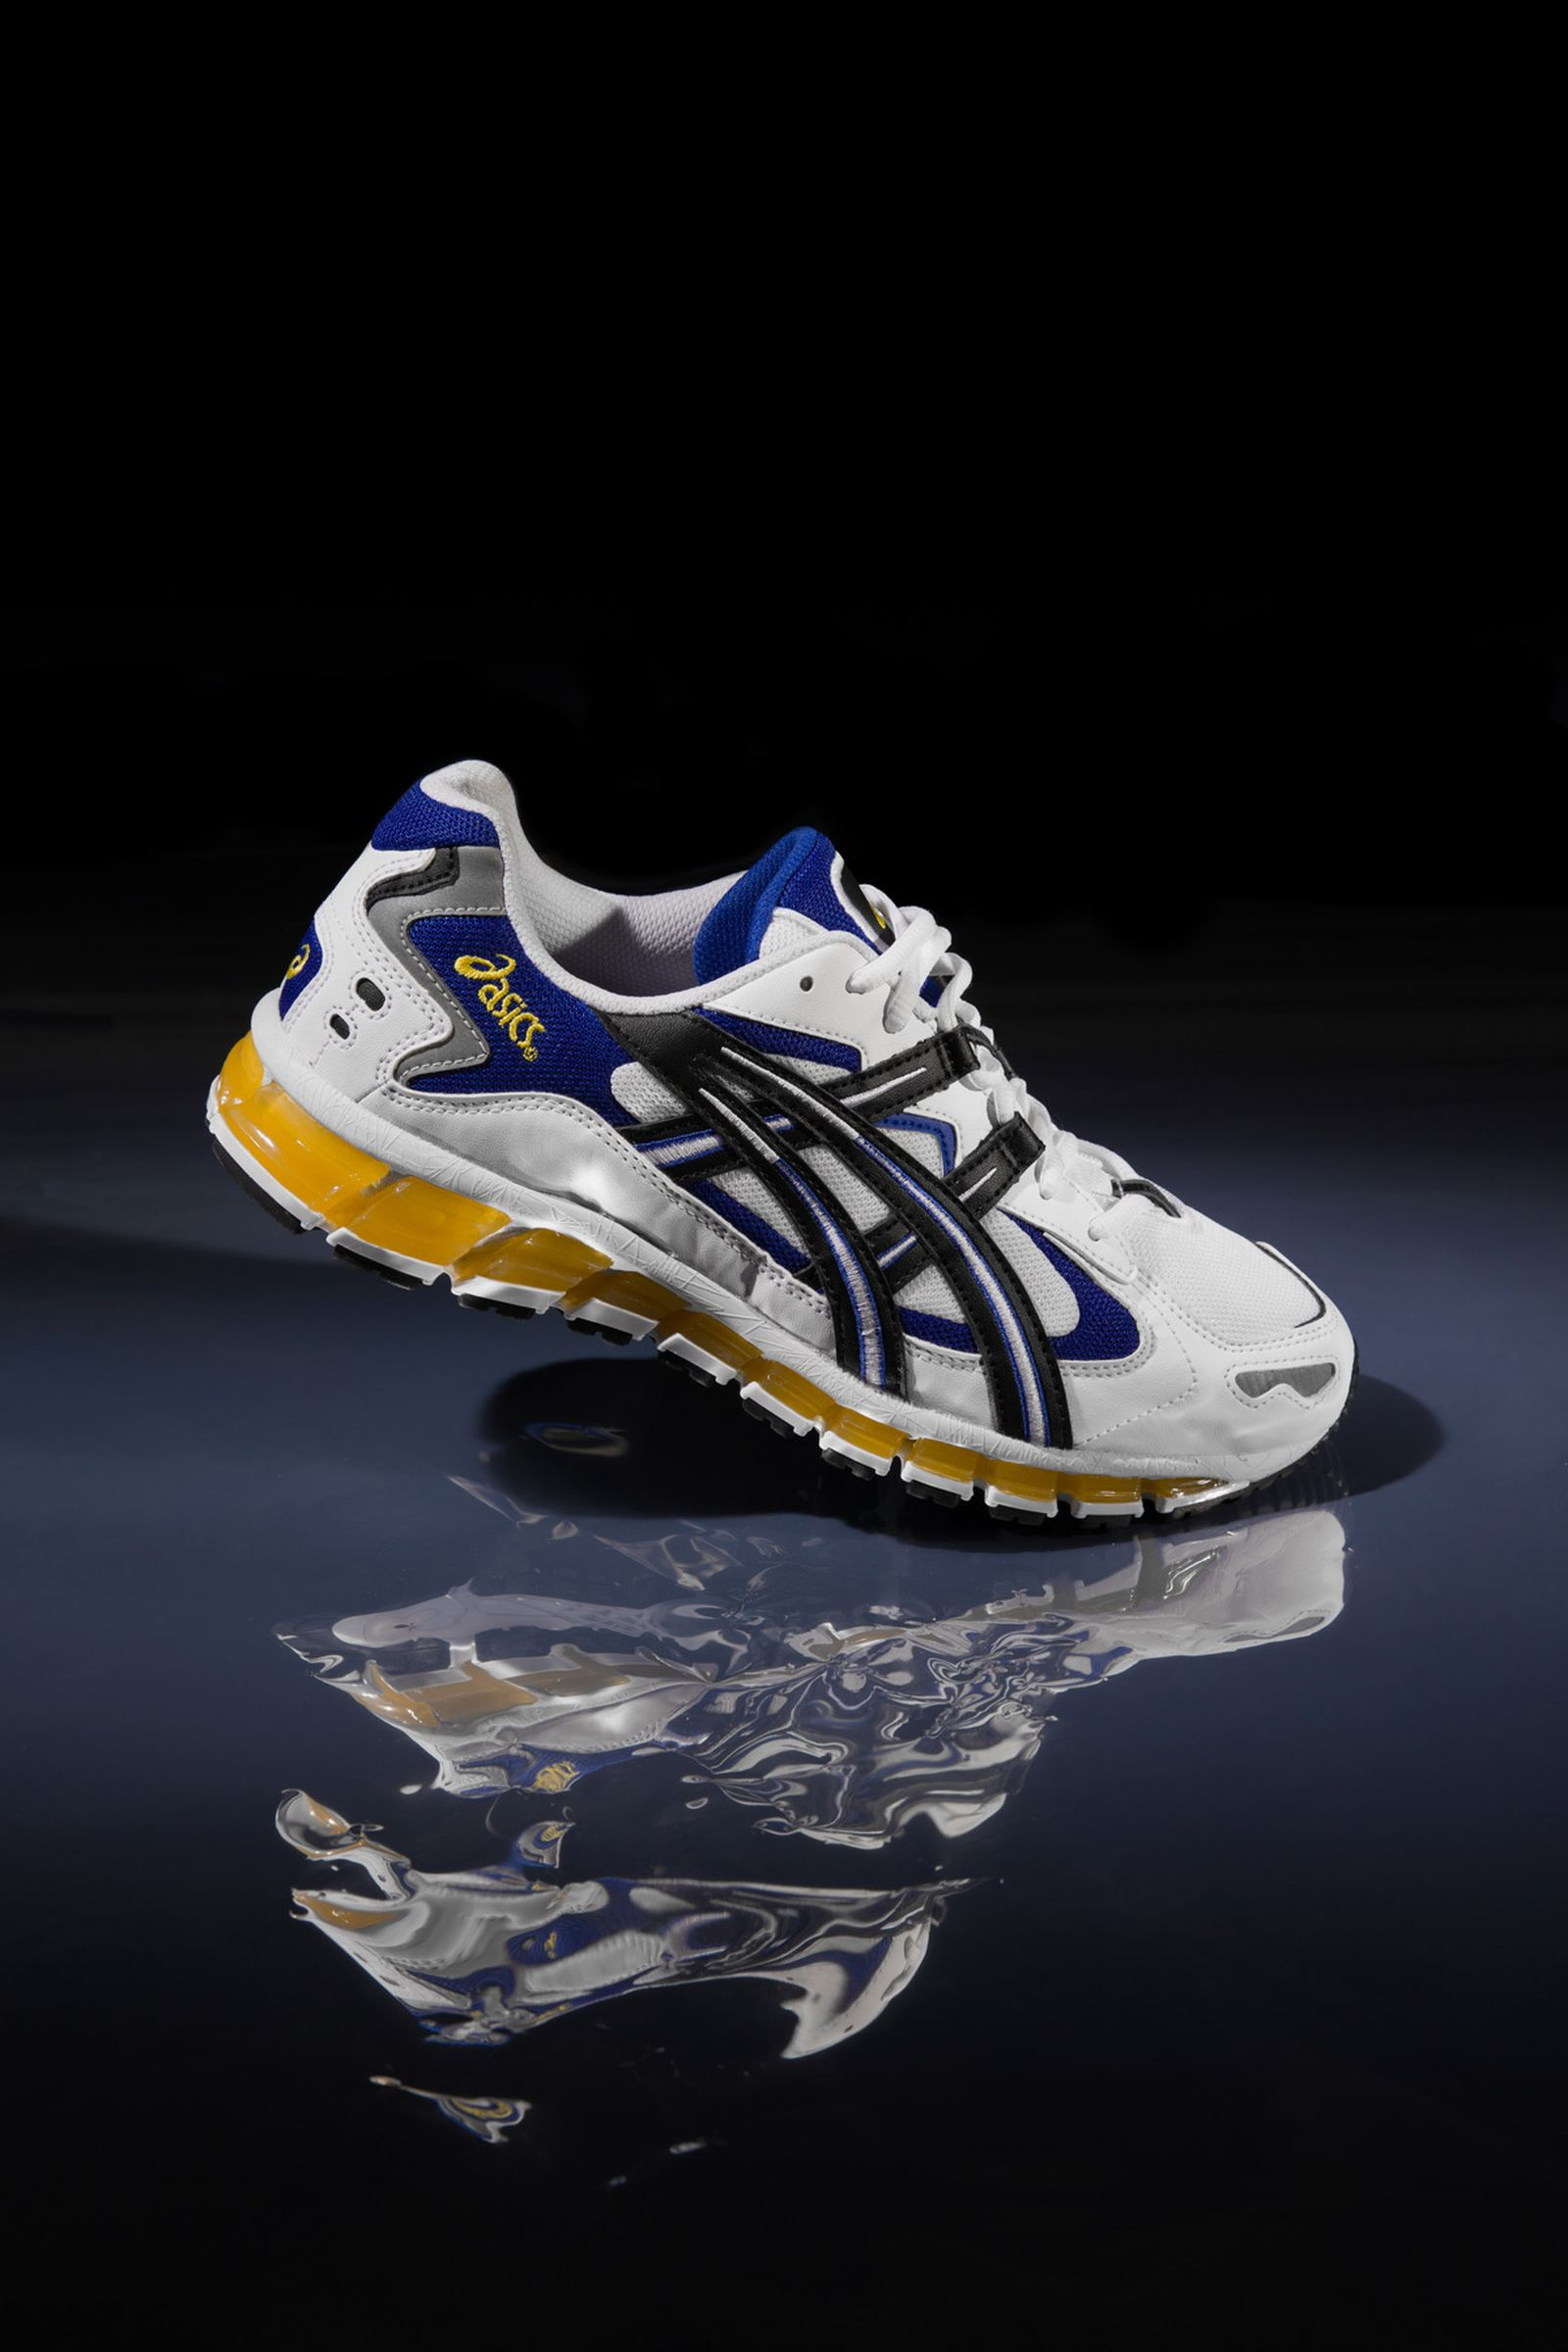 gel kayano 5 og 360 april 16 ASICS GEL-KAYANO 5 ASICSTIGER